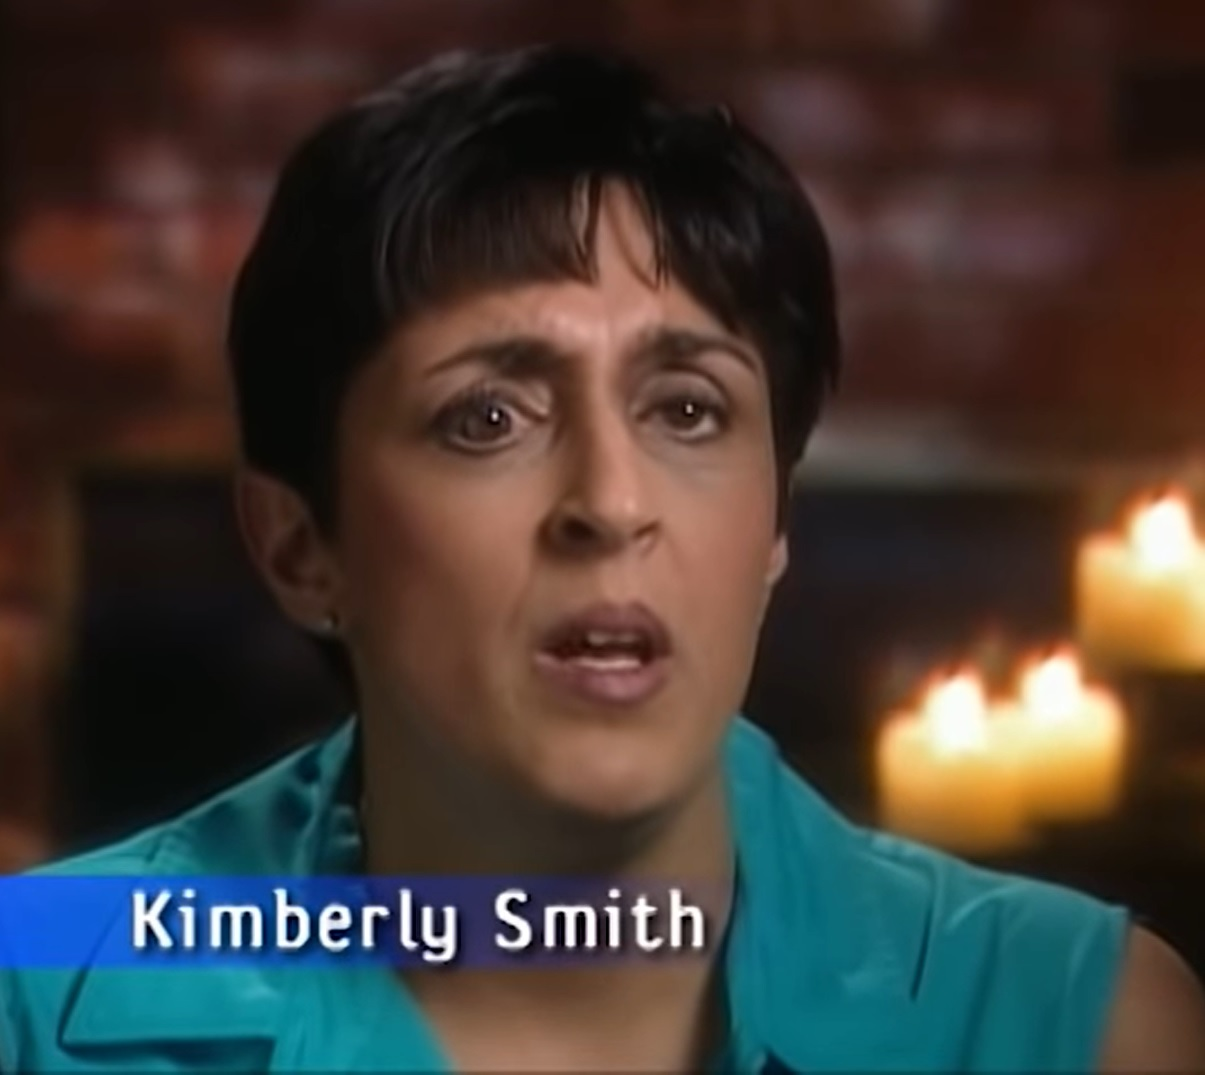 The Parents of Kimberly Smith